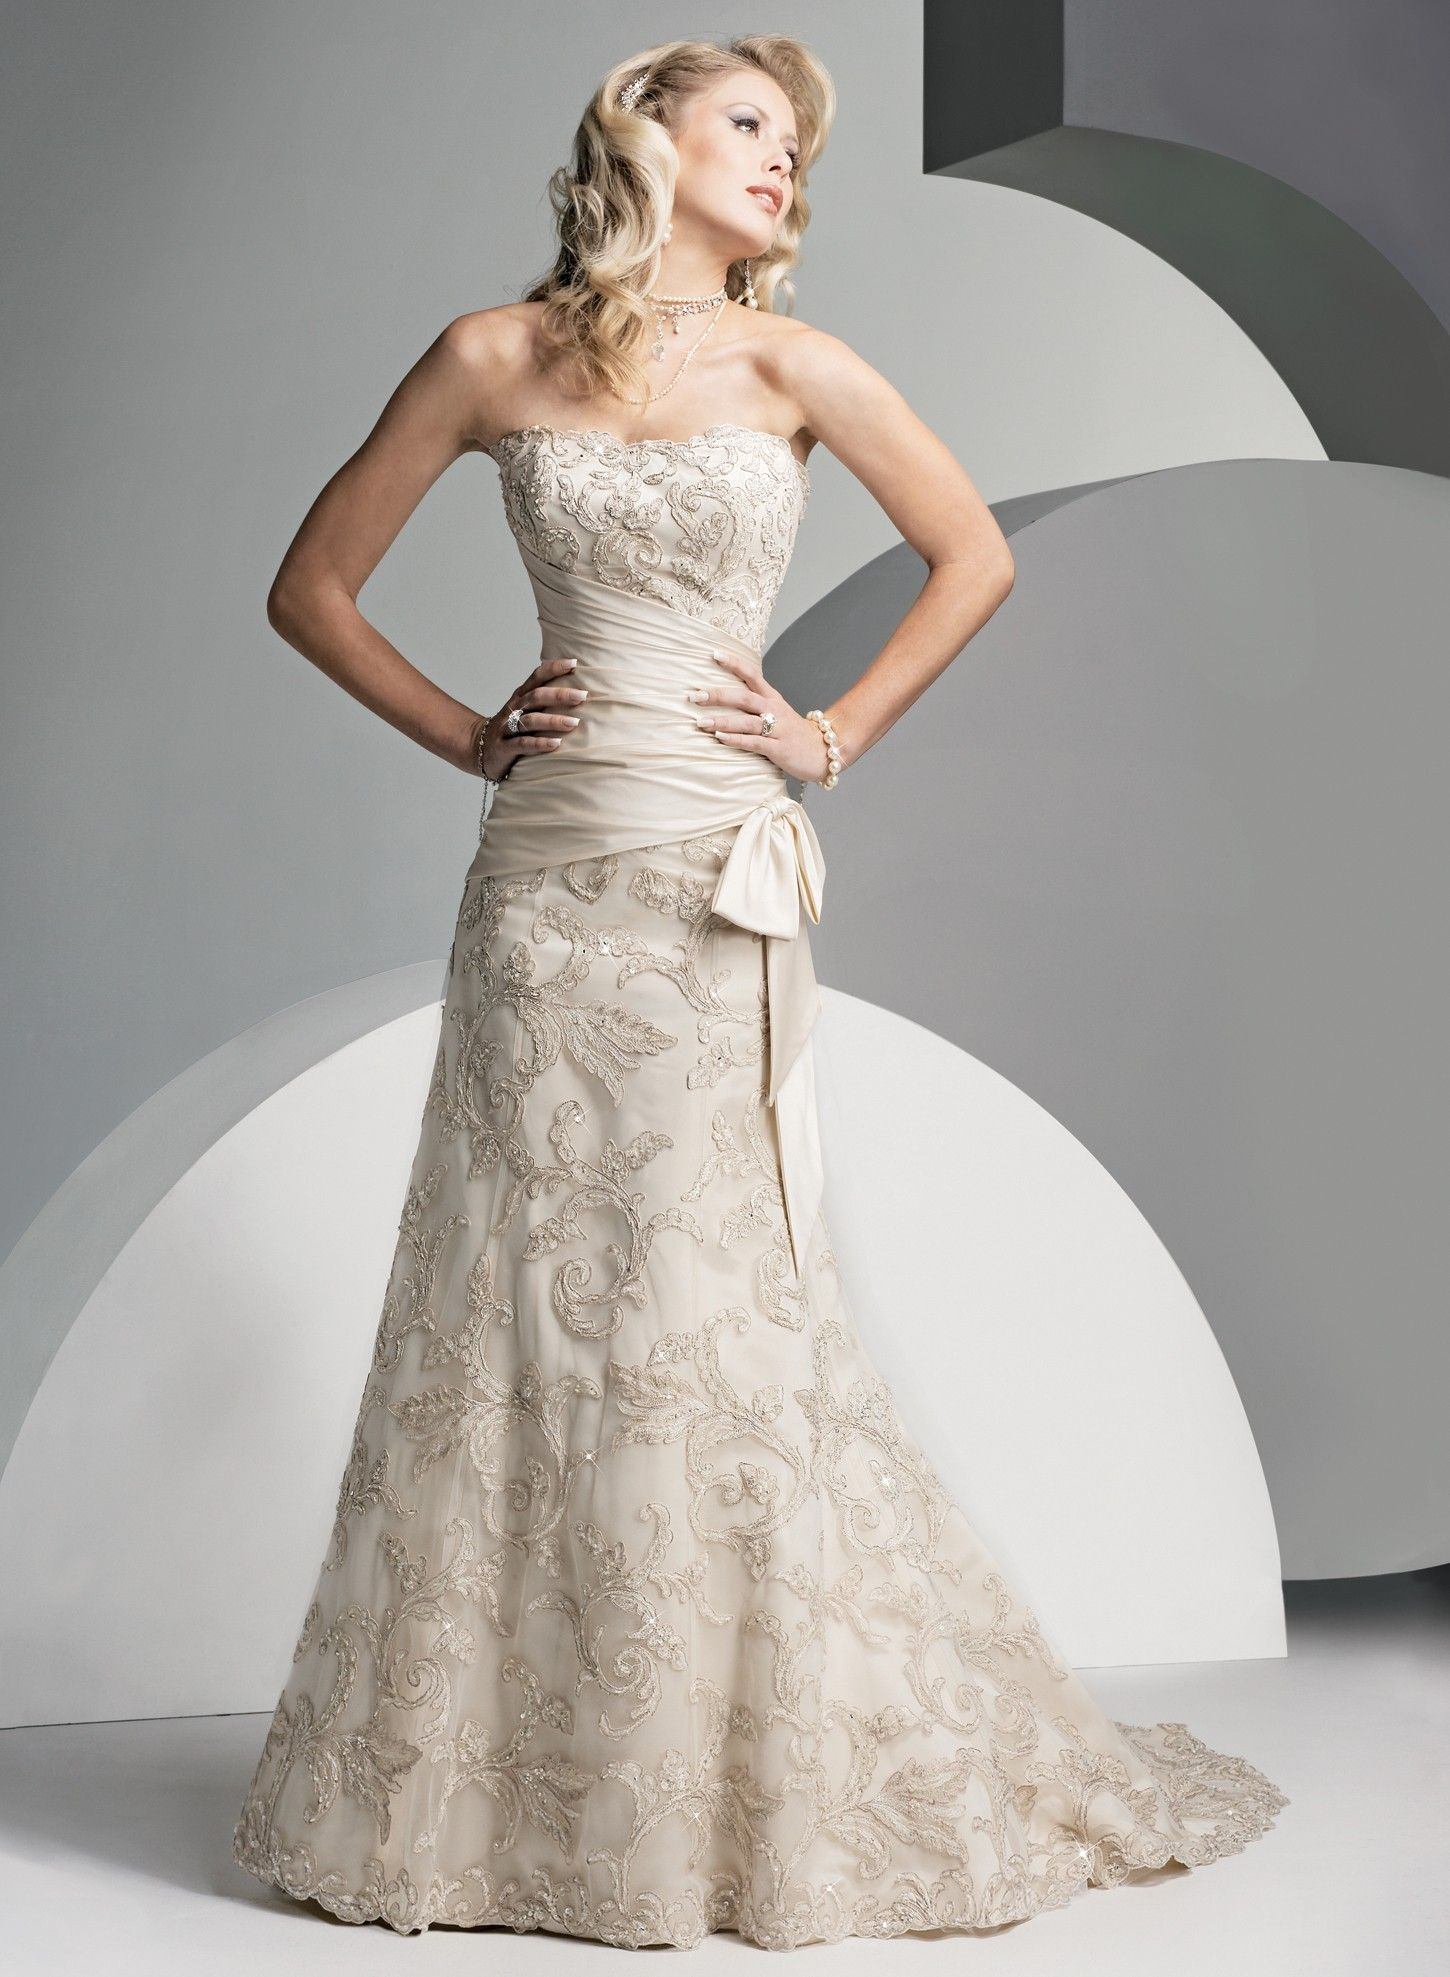 strapless lace wedding dress Lace Wedding Dresses Reference for your ideal wedding